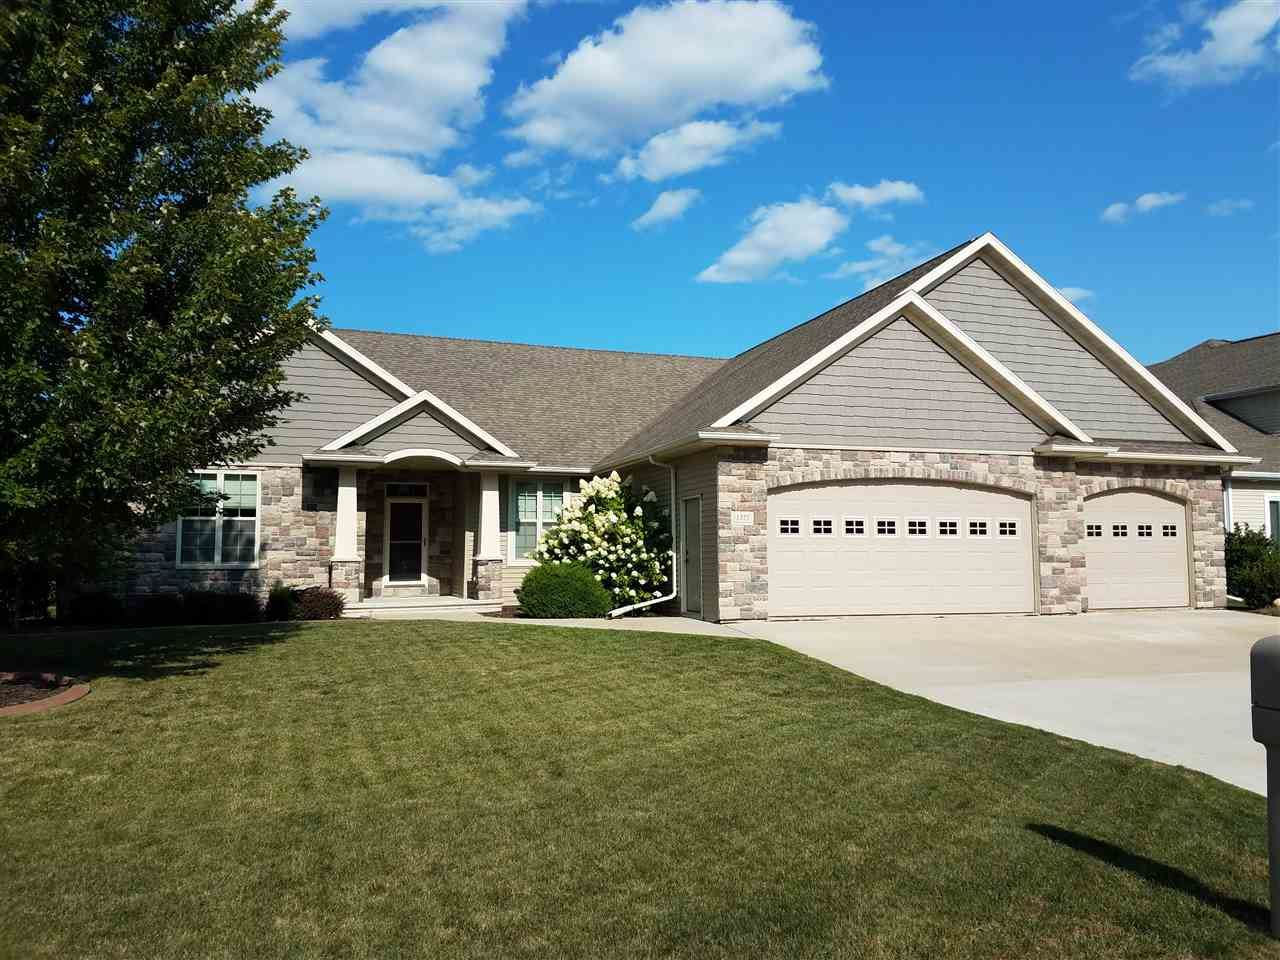 1371 WHISPERING PINES Lane, Neenah, WI 54956 - MLS#: 50238287